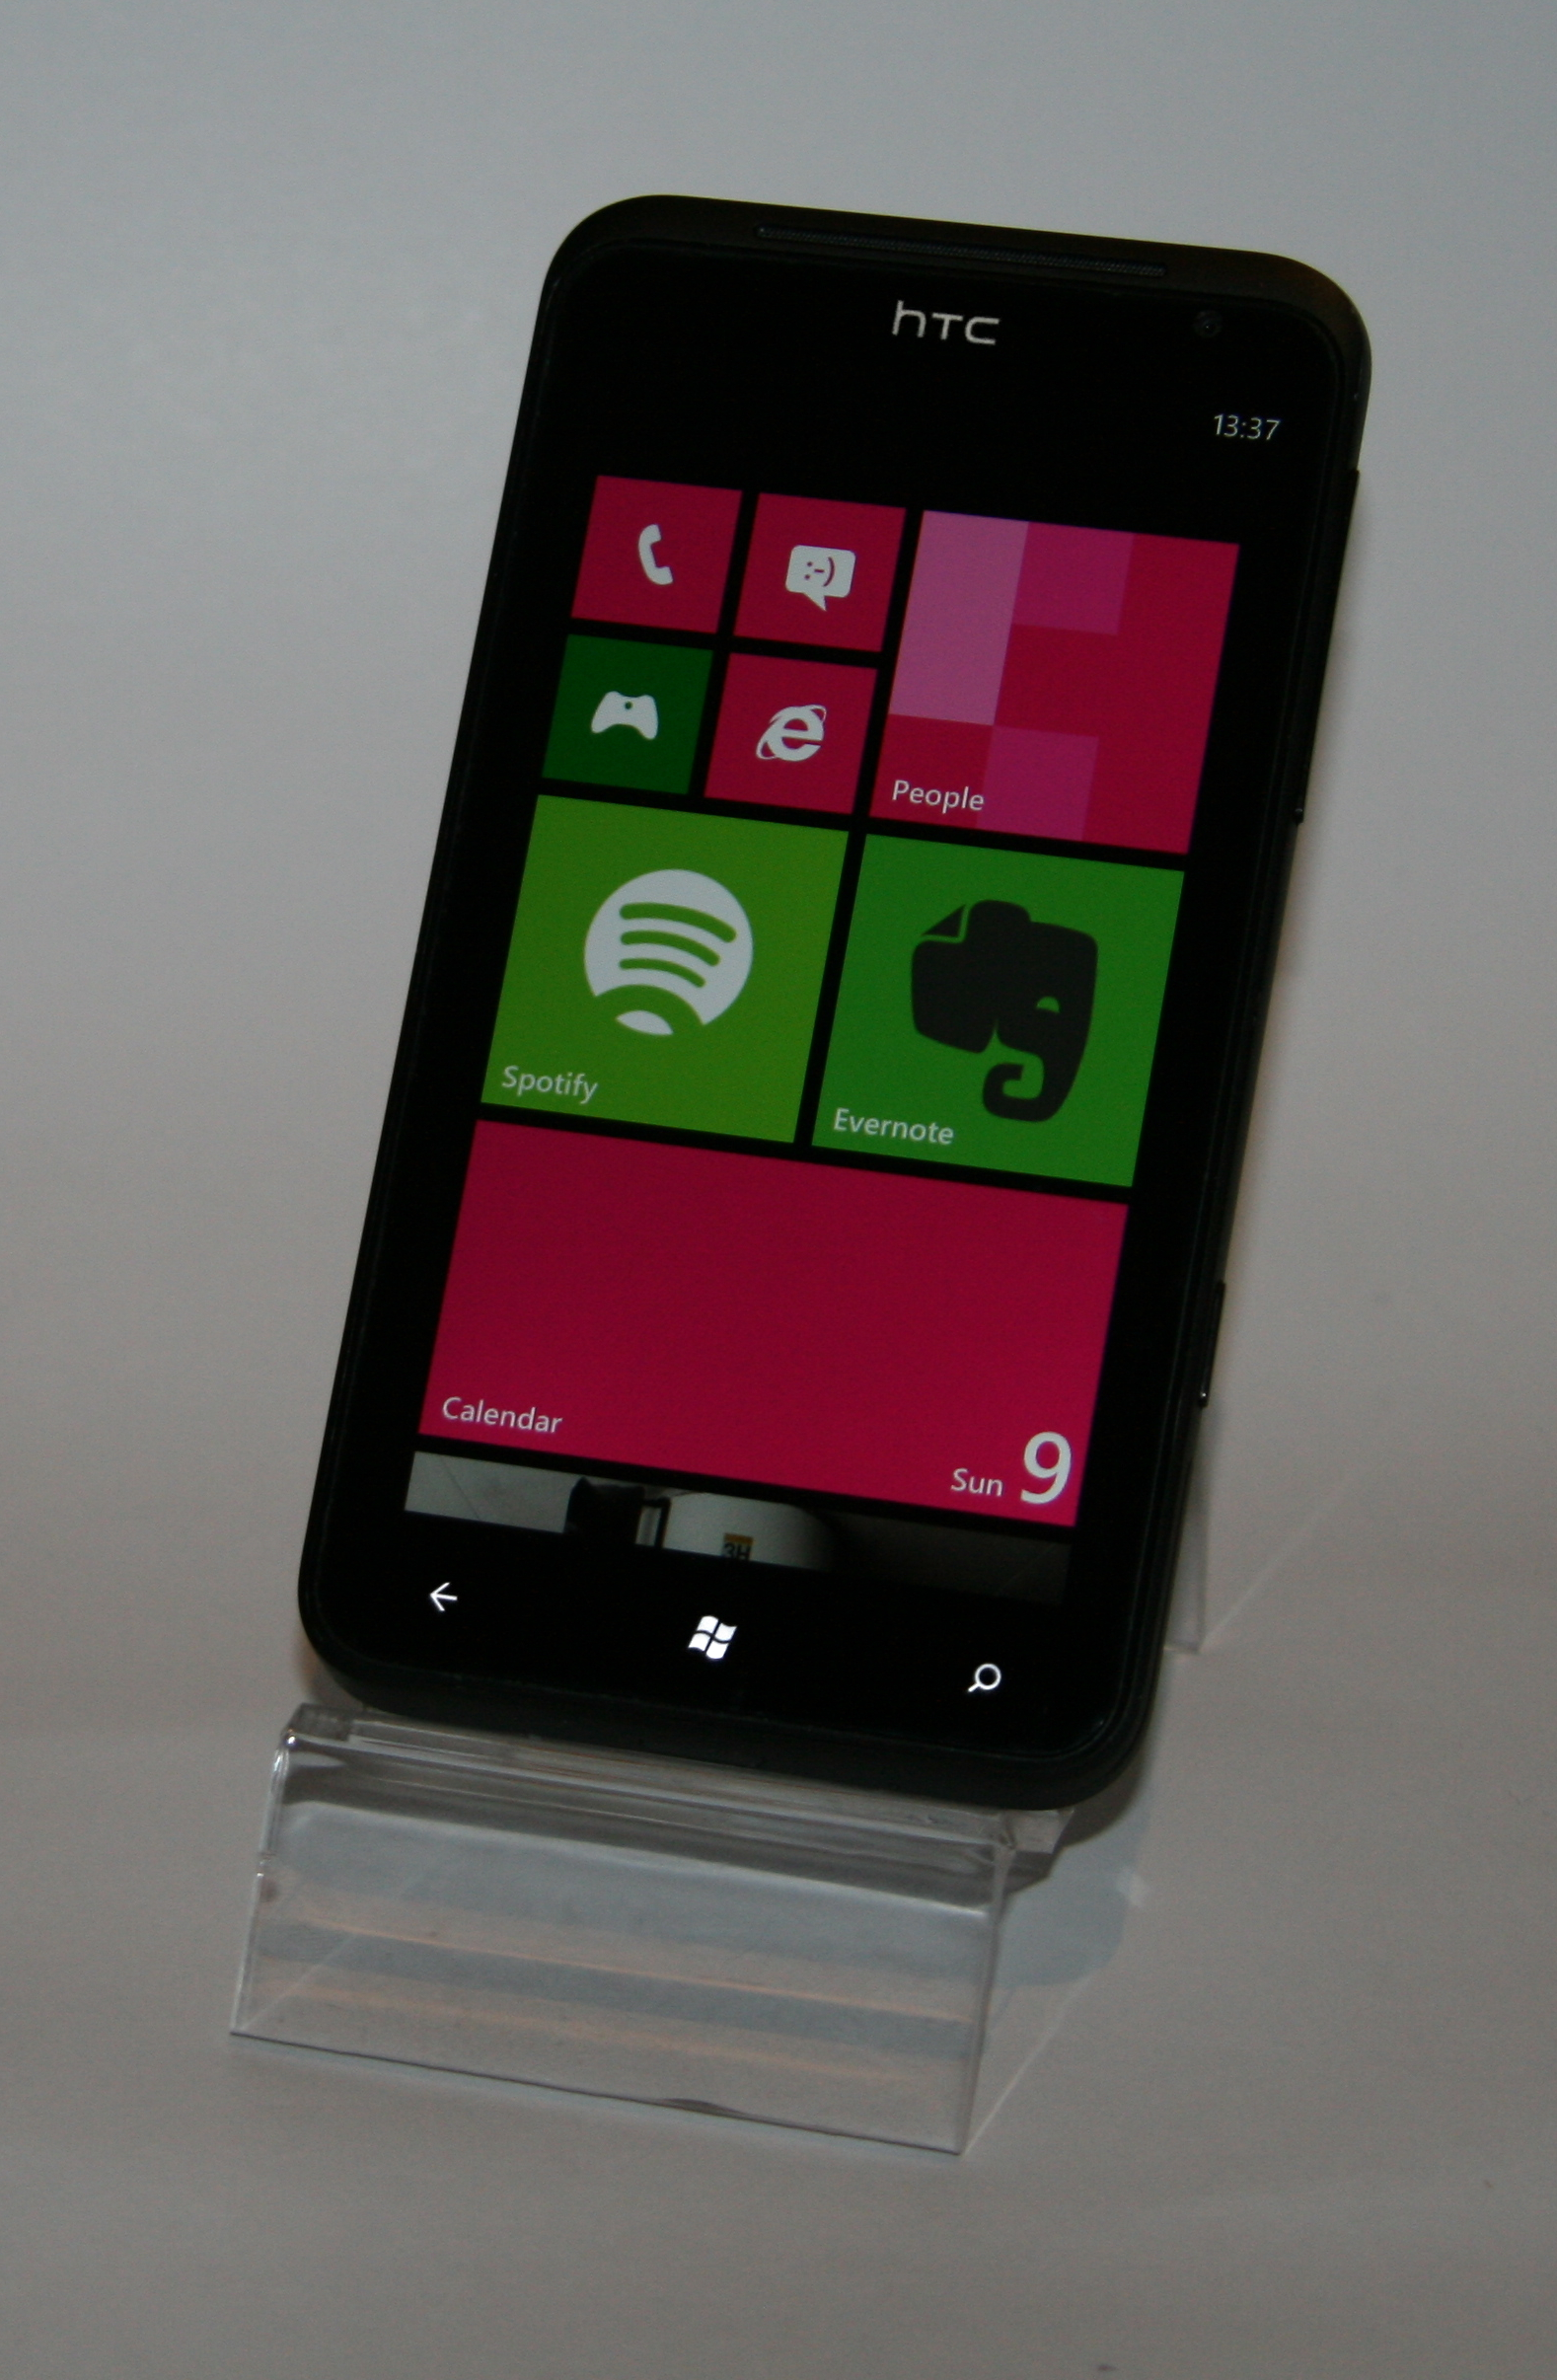 Windows Phone 7 - Wikipedia